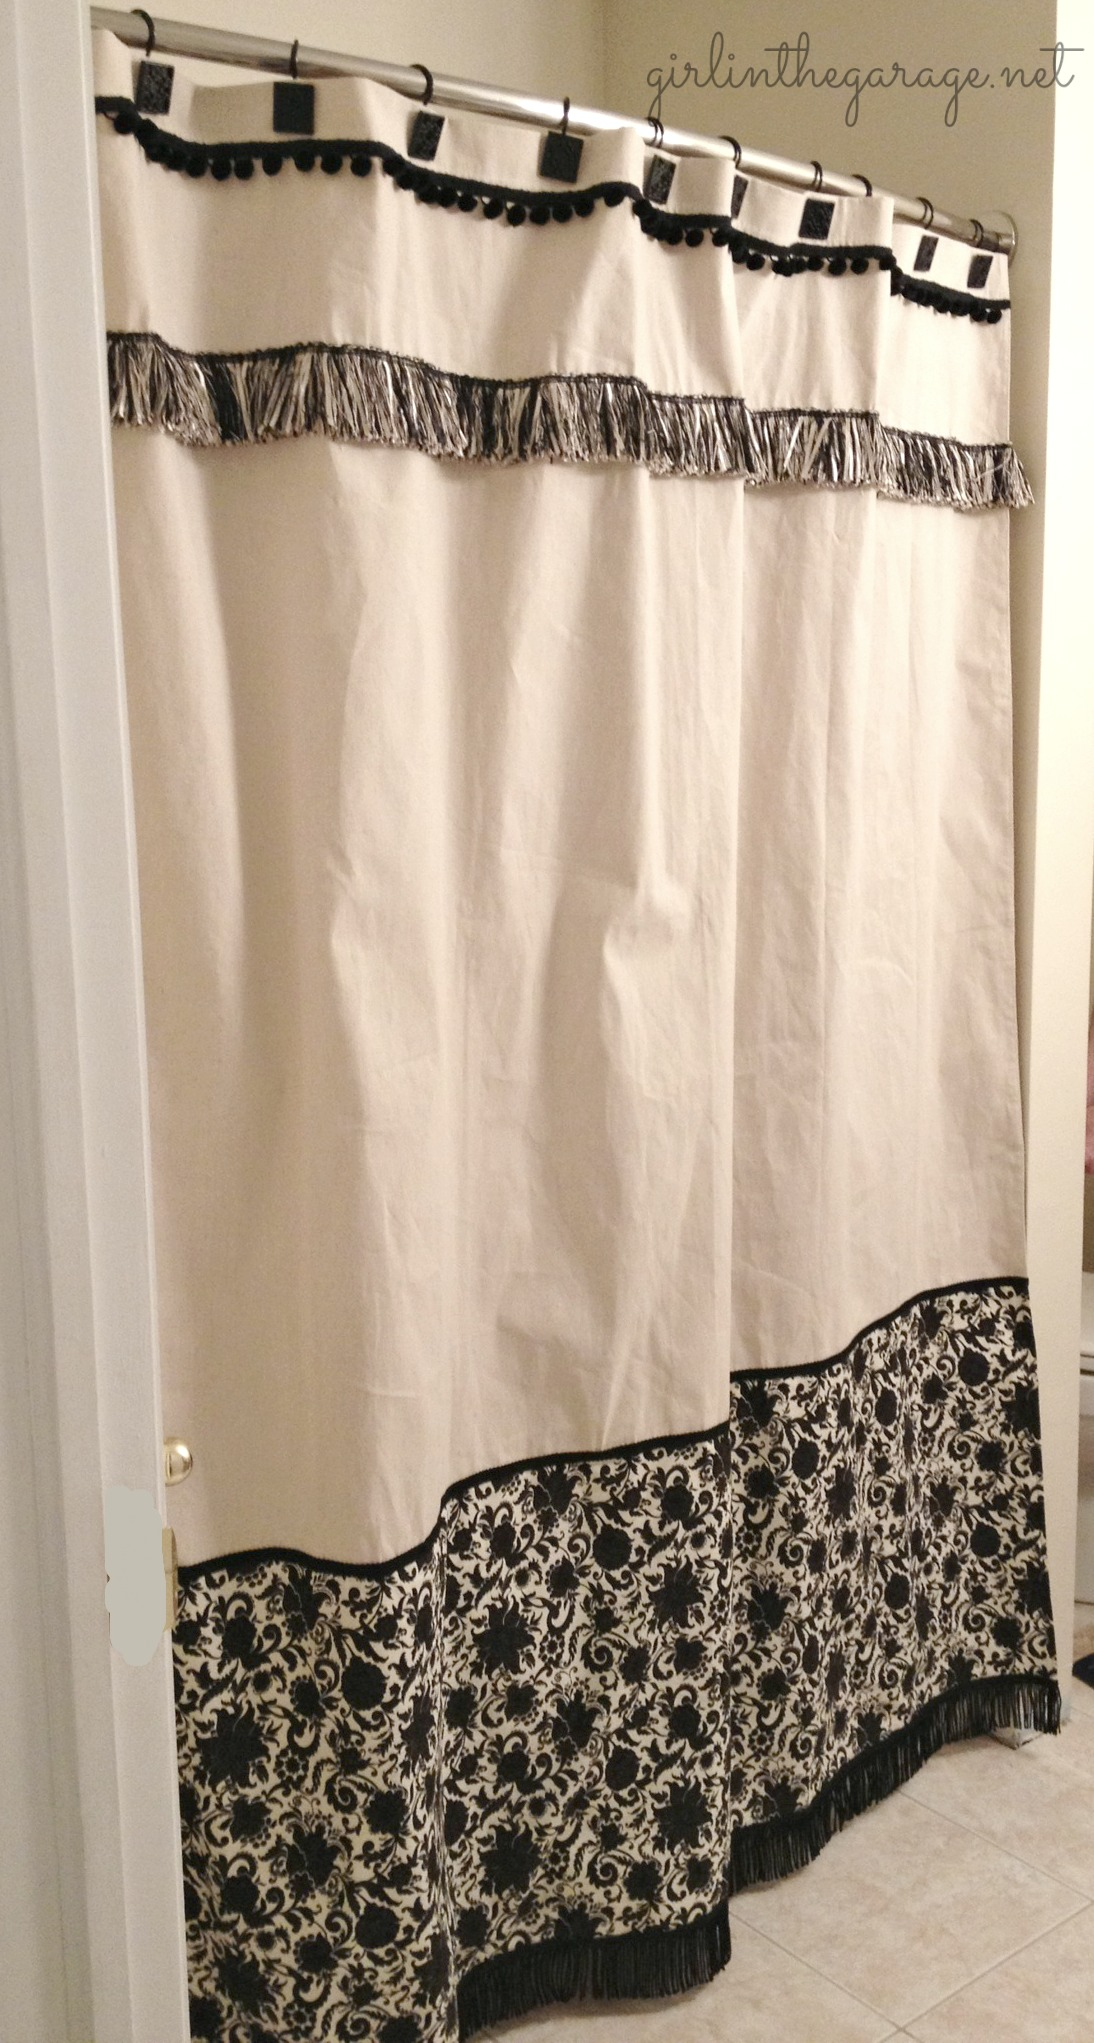 Diy Custom Shower Curtain Girl In The Garage